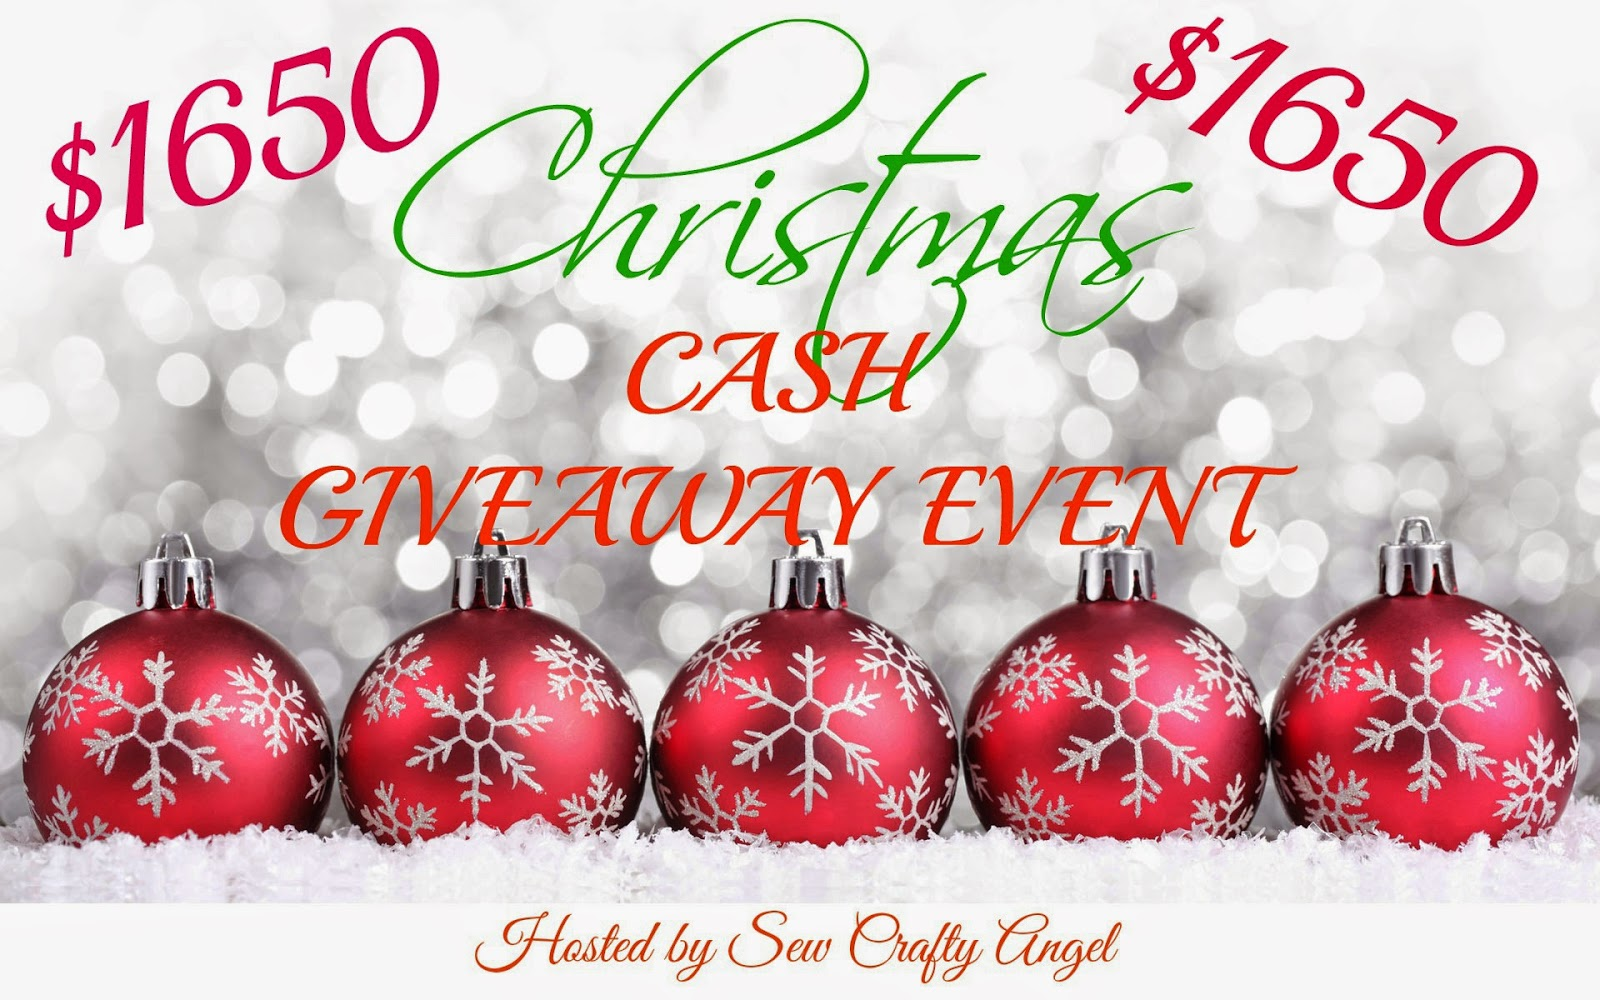 $1650 Christmas Cash Giveaway